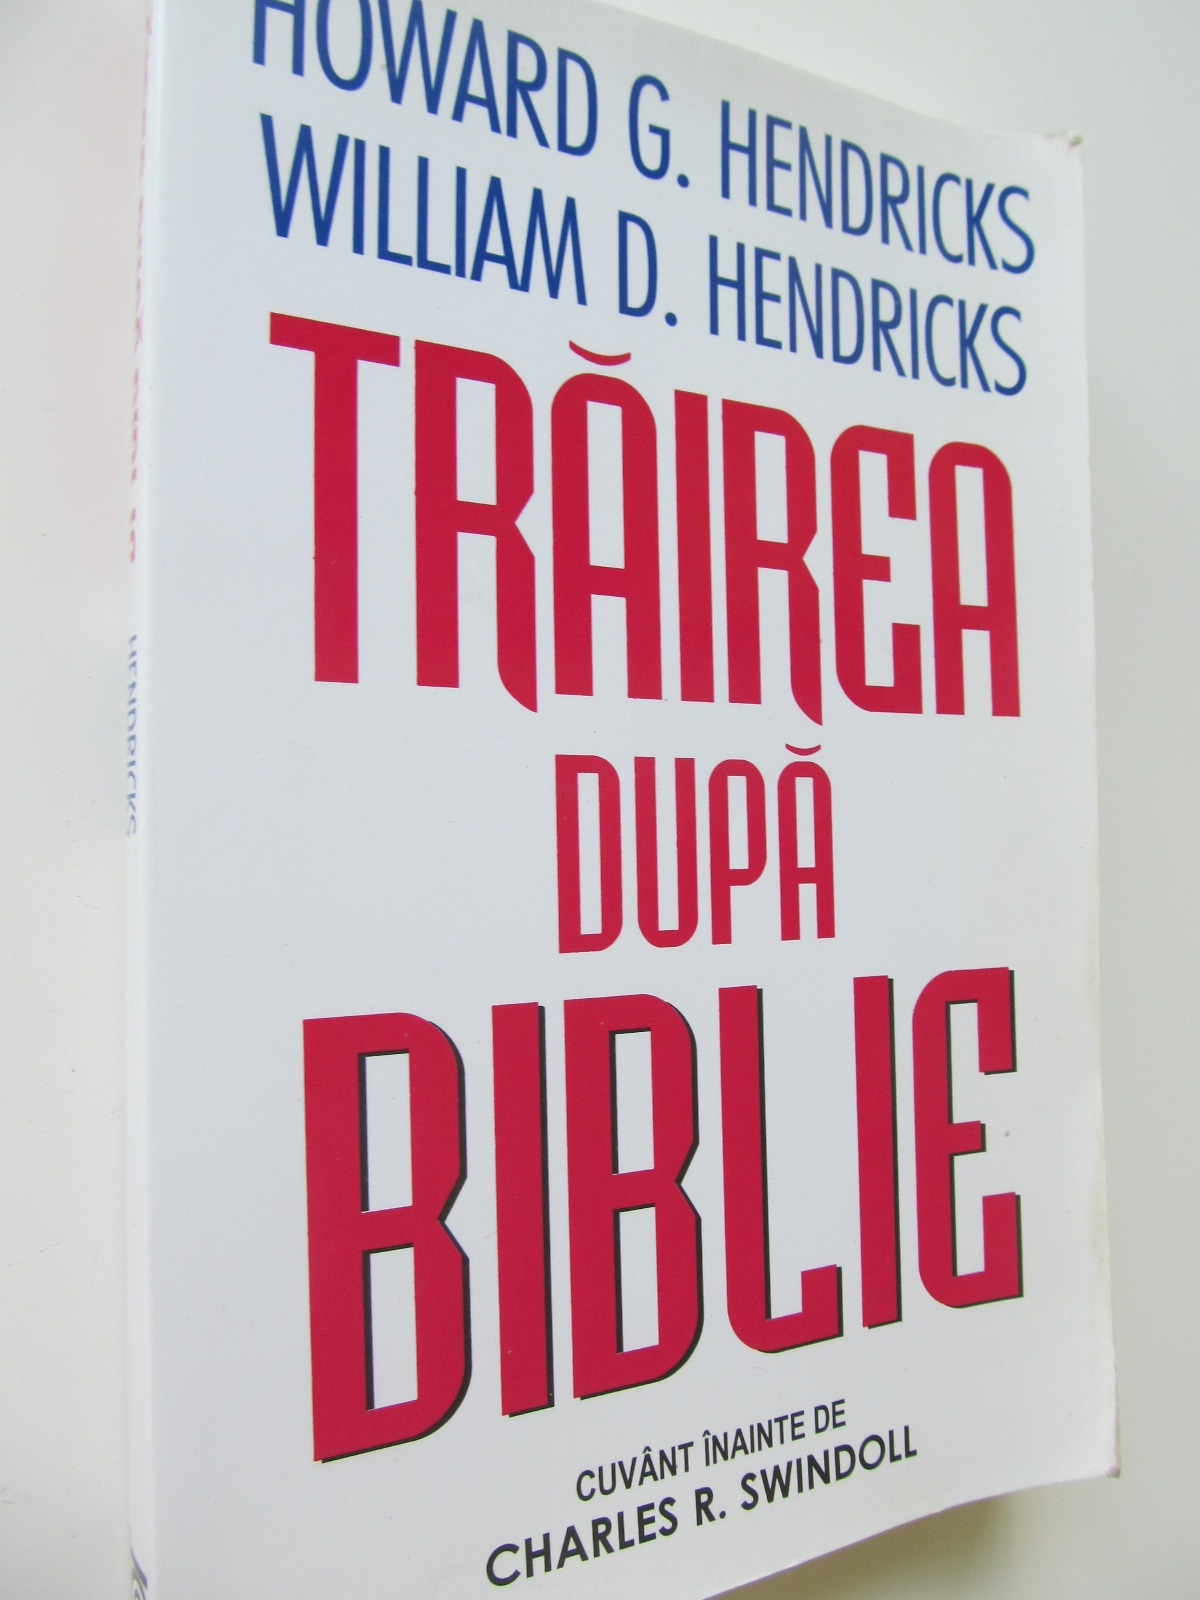 Trairea dupa Biblie - Howard G. Hendricks, William D. Hendricks | Detalii carte